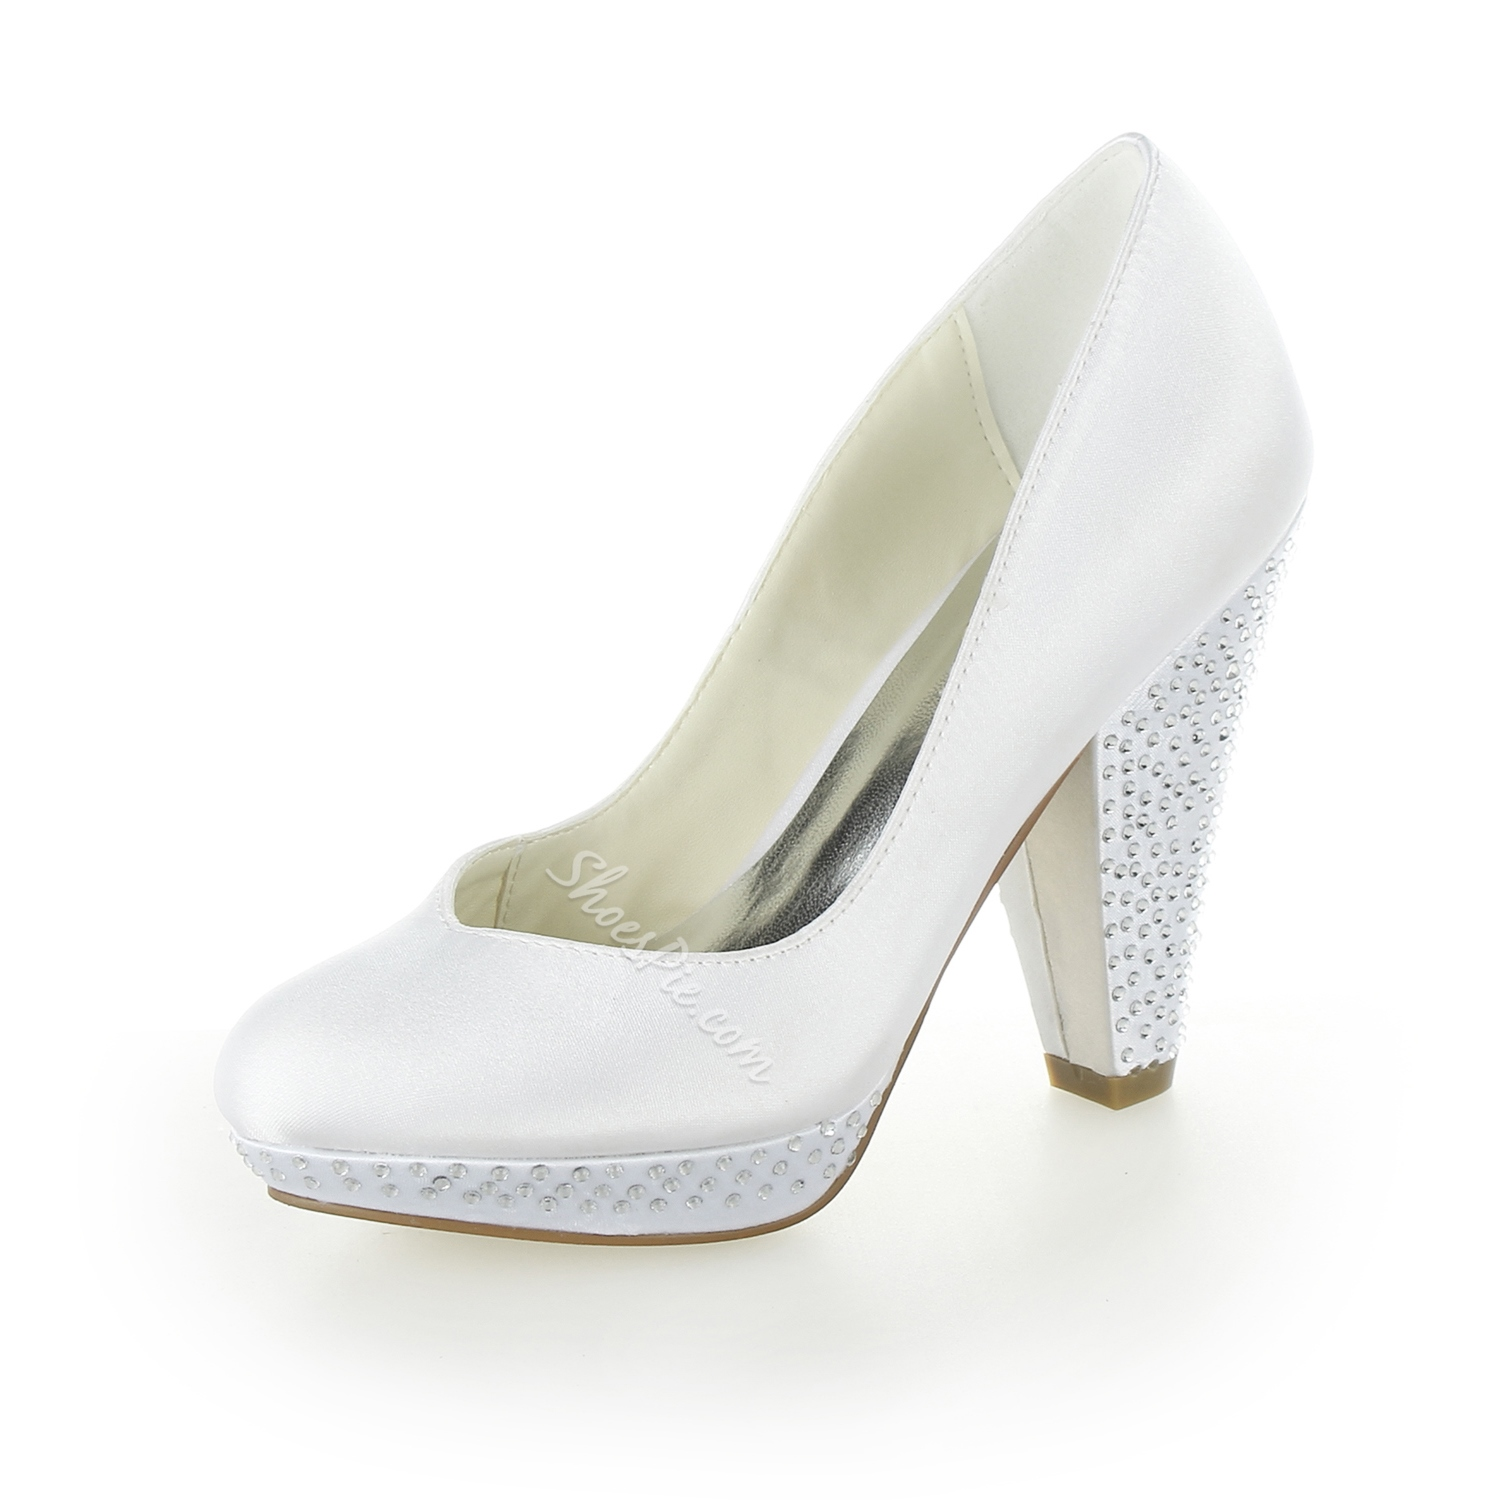 Shinning Beaded Chunky Heel Bridal Shoes- Shoespie.com